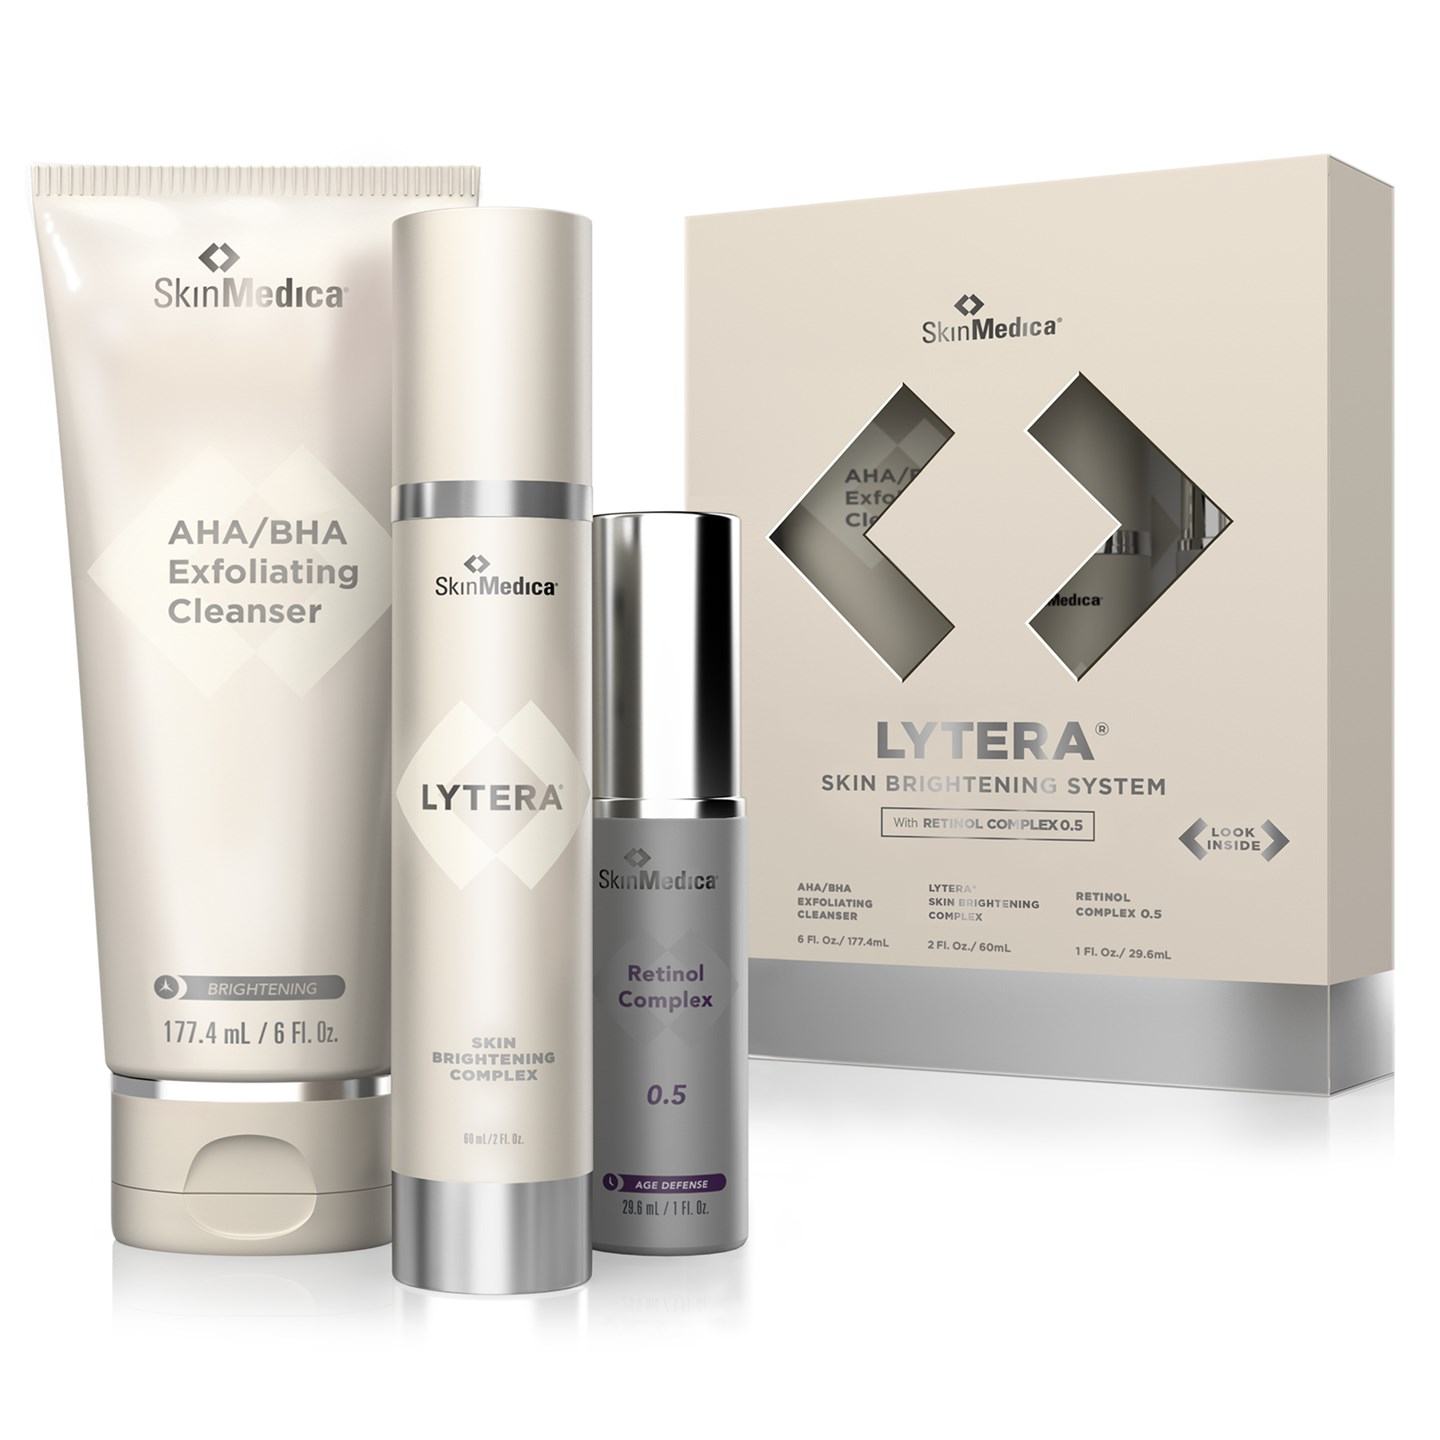 Skinmedica Lytera Skin Brightening System Time Out Beauty